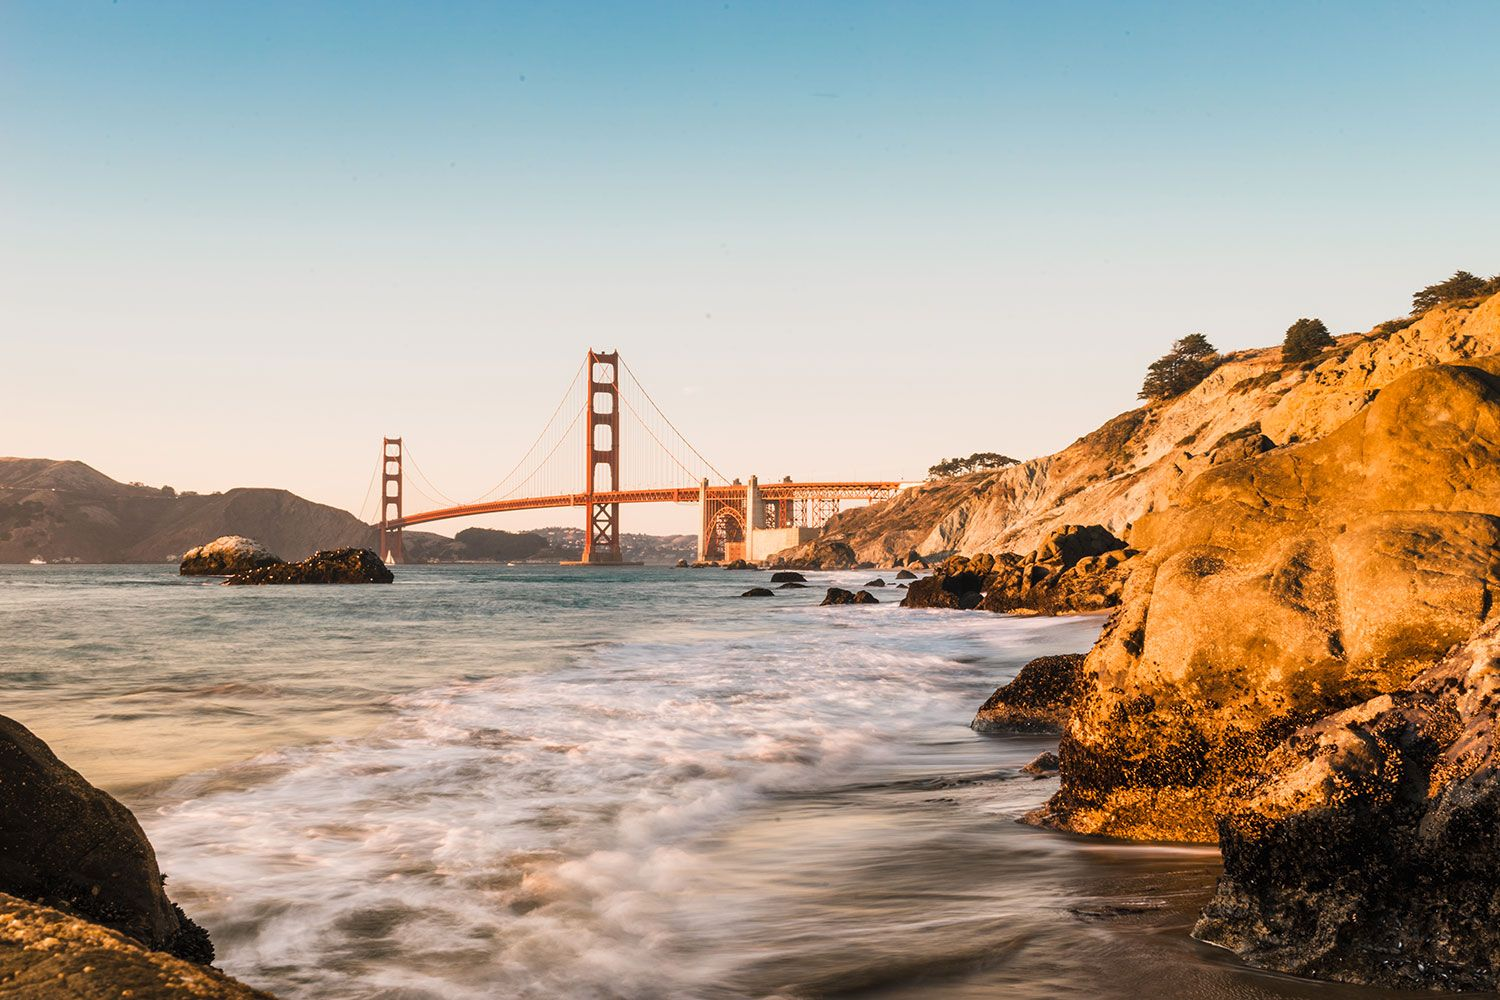 Fotomurales: Puente Golden Gate de San Francisco